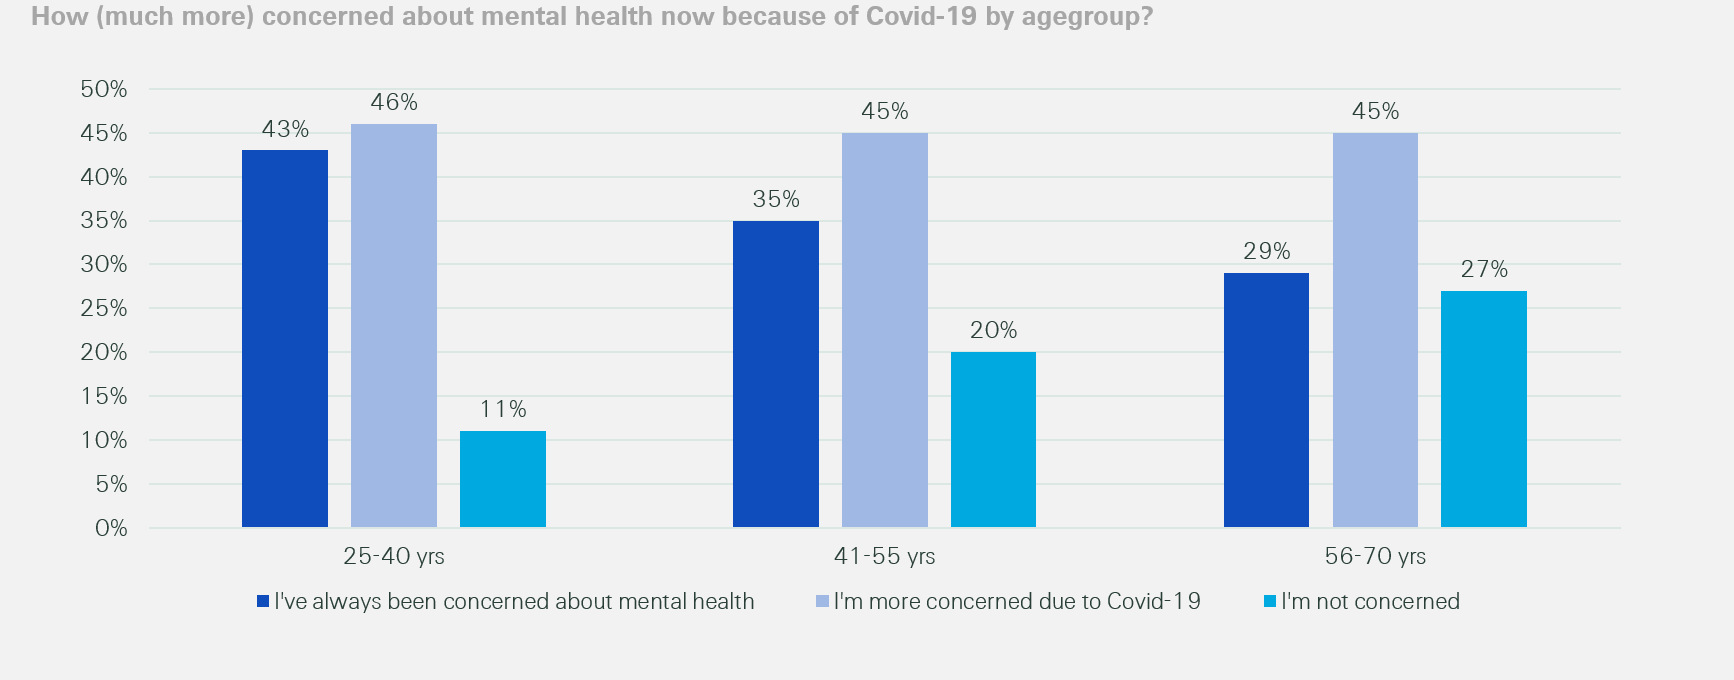 Covid-19 mental health concern by age